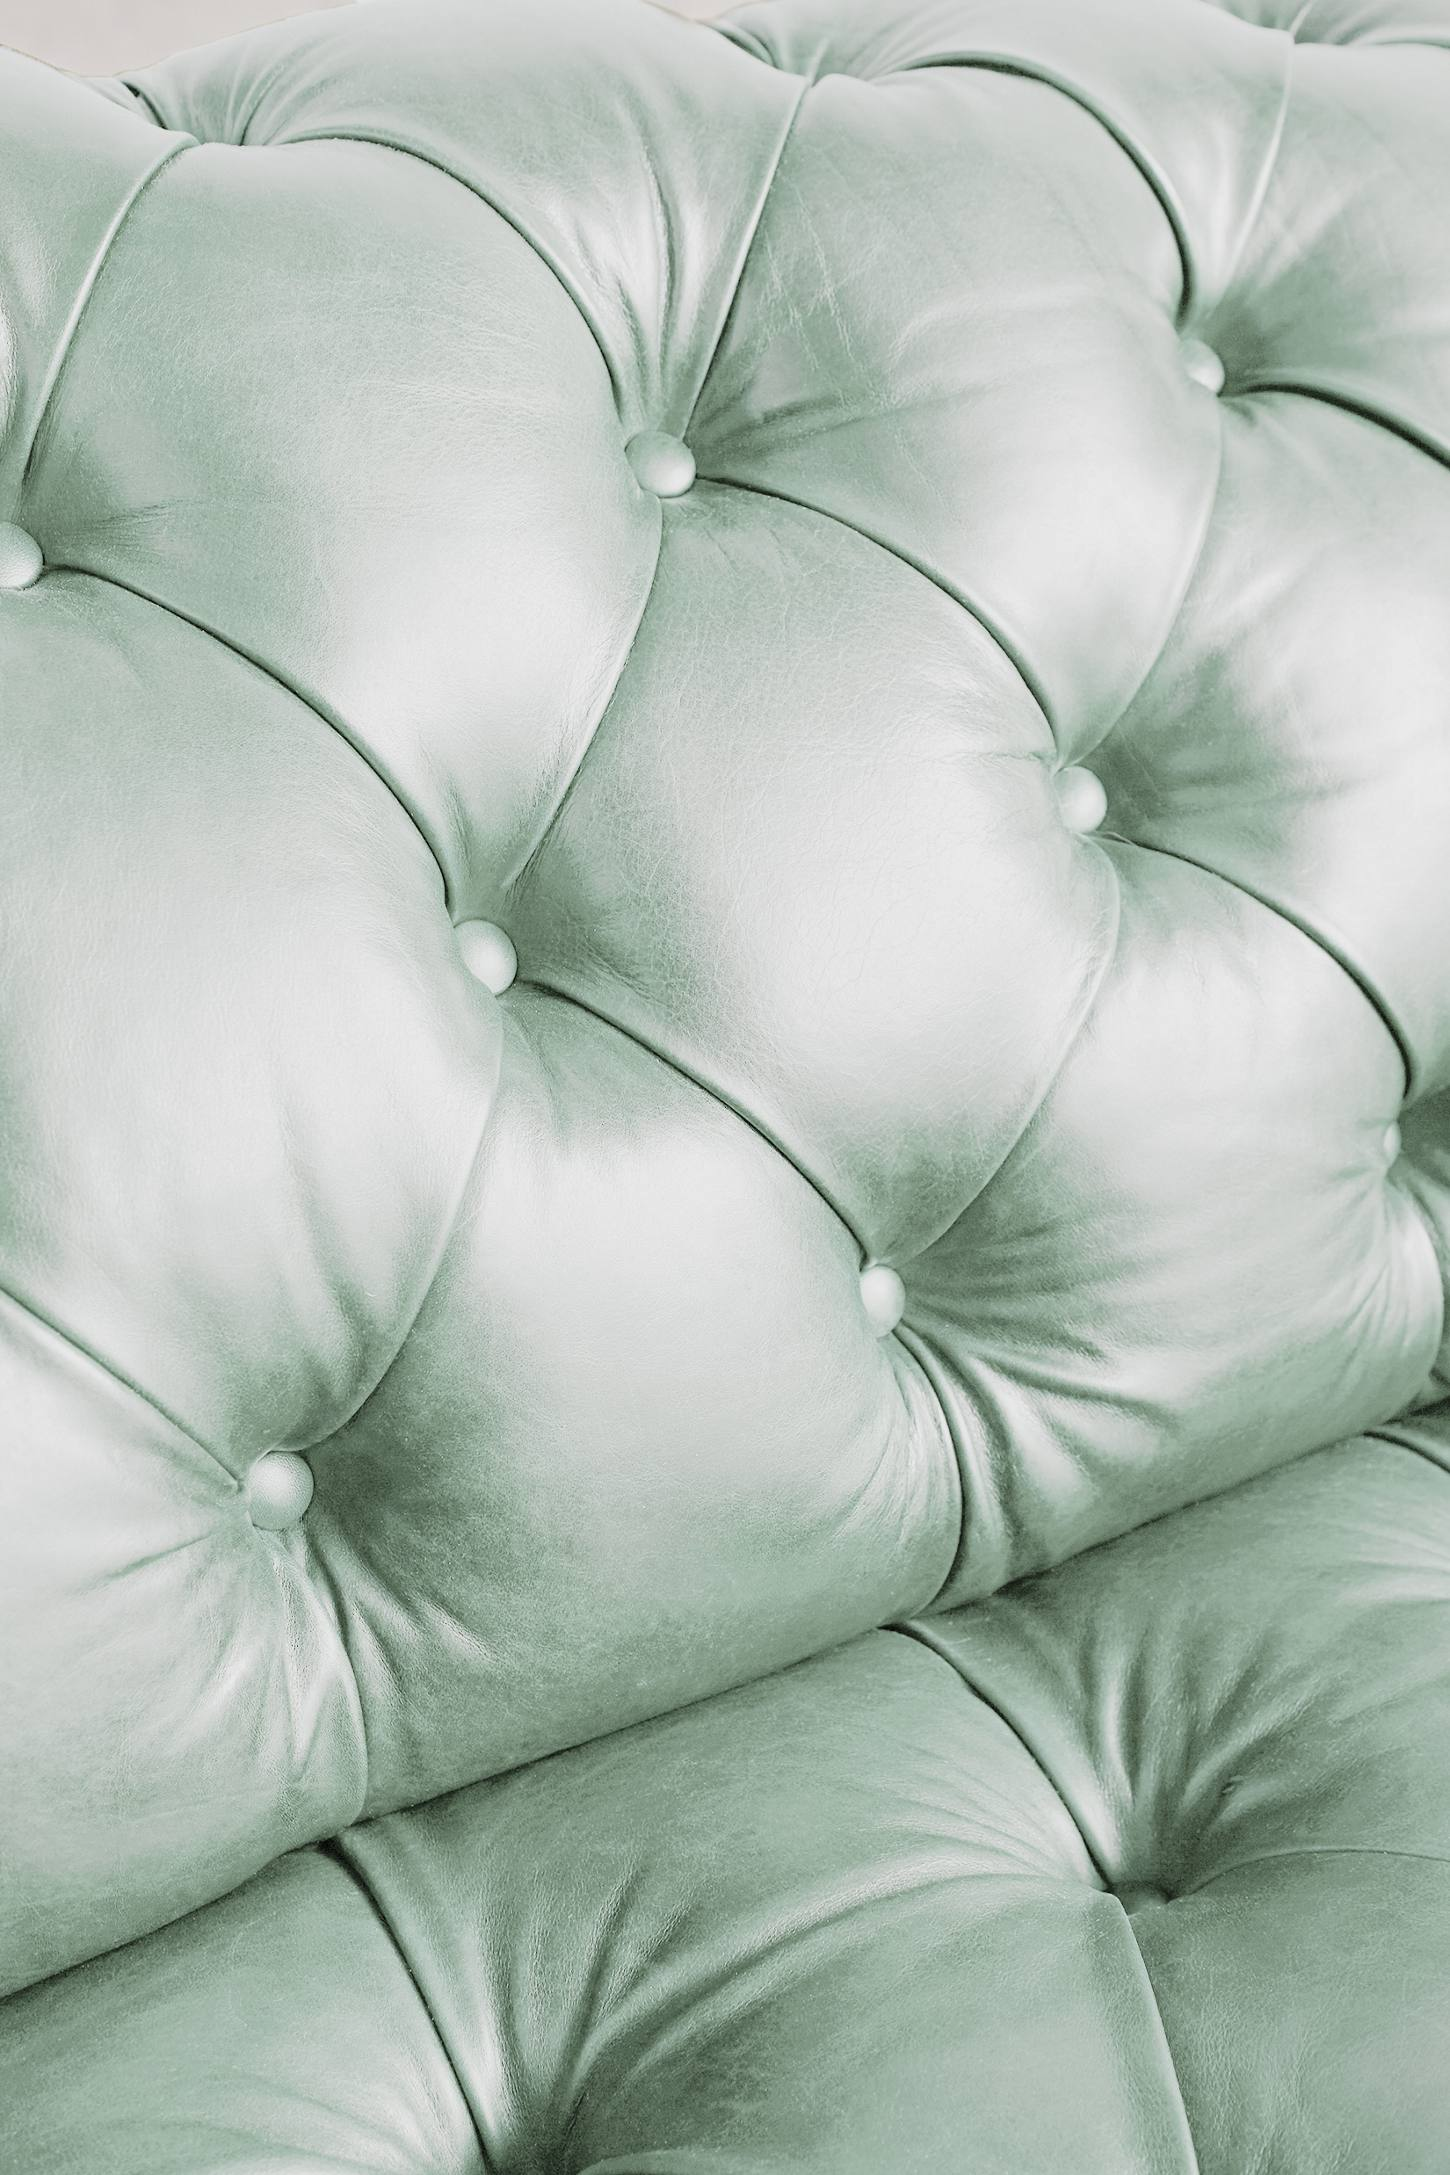 Slide View: 4: Premium Leather Olivette Sofa